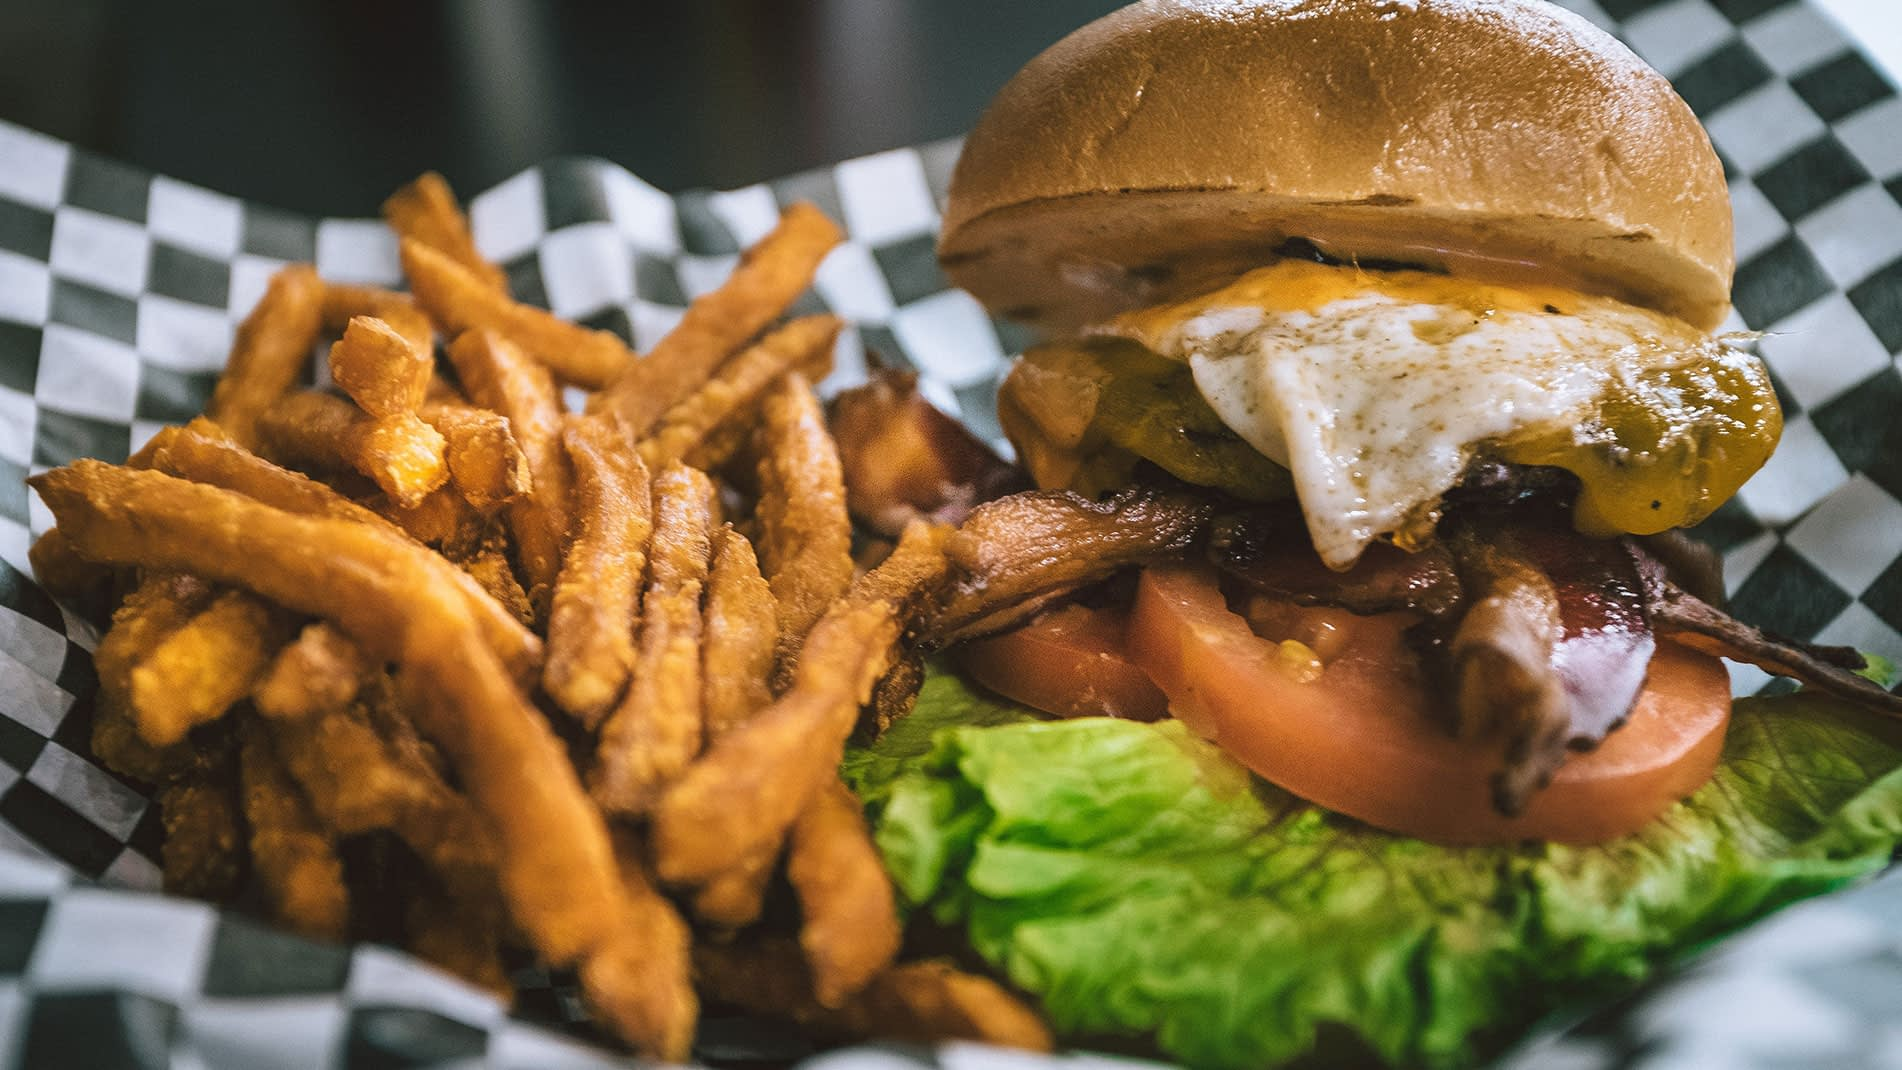 A greasy burger with fried egg and a side of fries